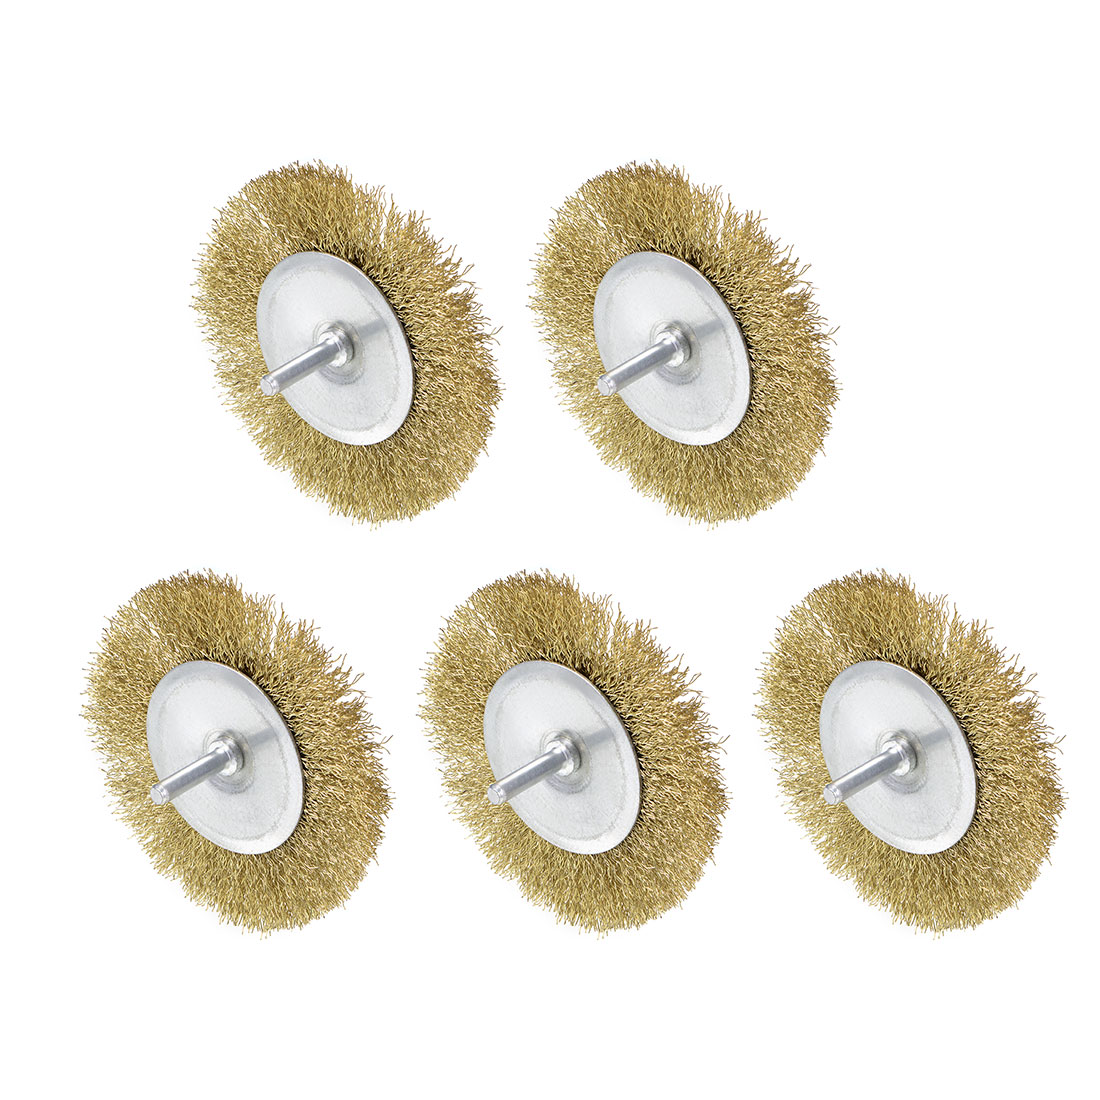 4-Inch Wire Wheel Brush Bench Brass Plated Crimped Steel 1/4-Inch Shank 5Pcs